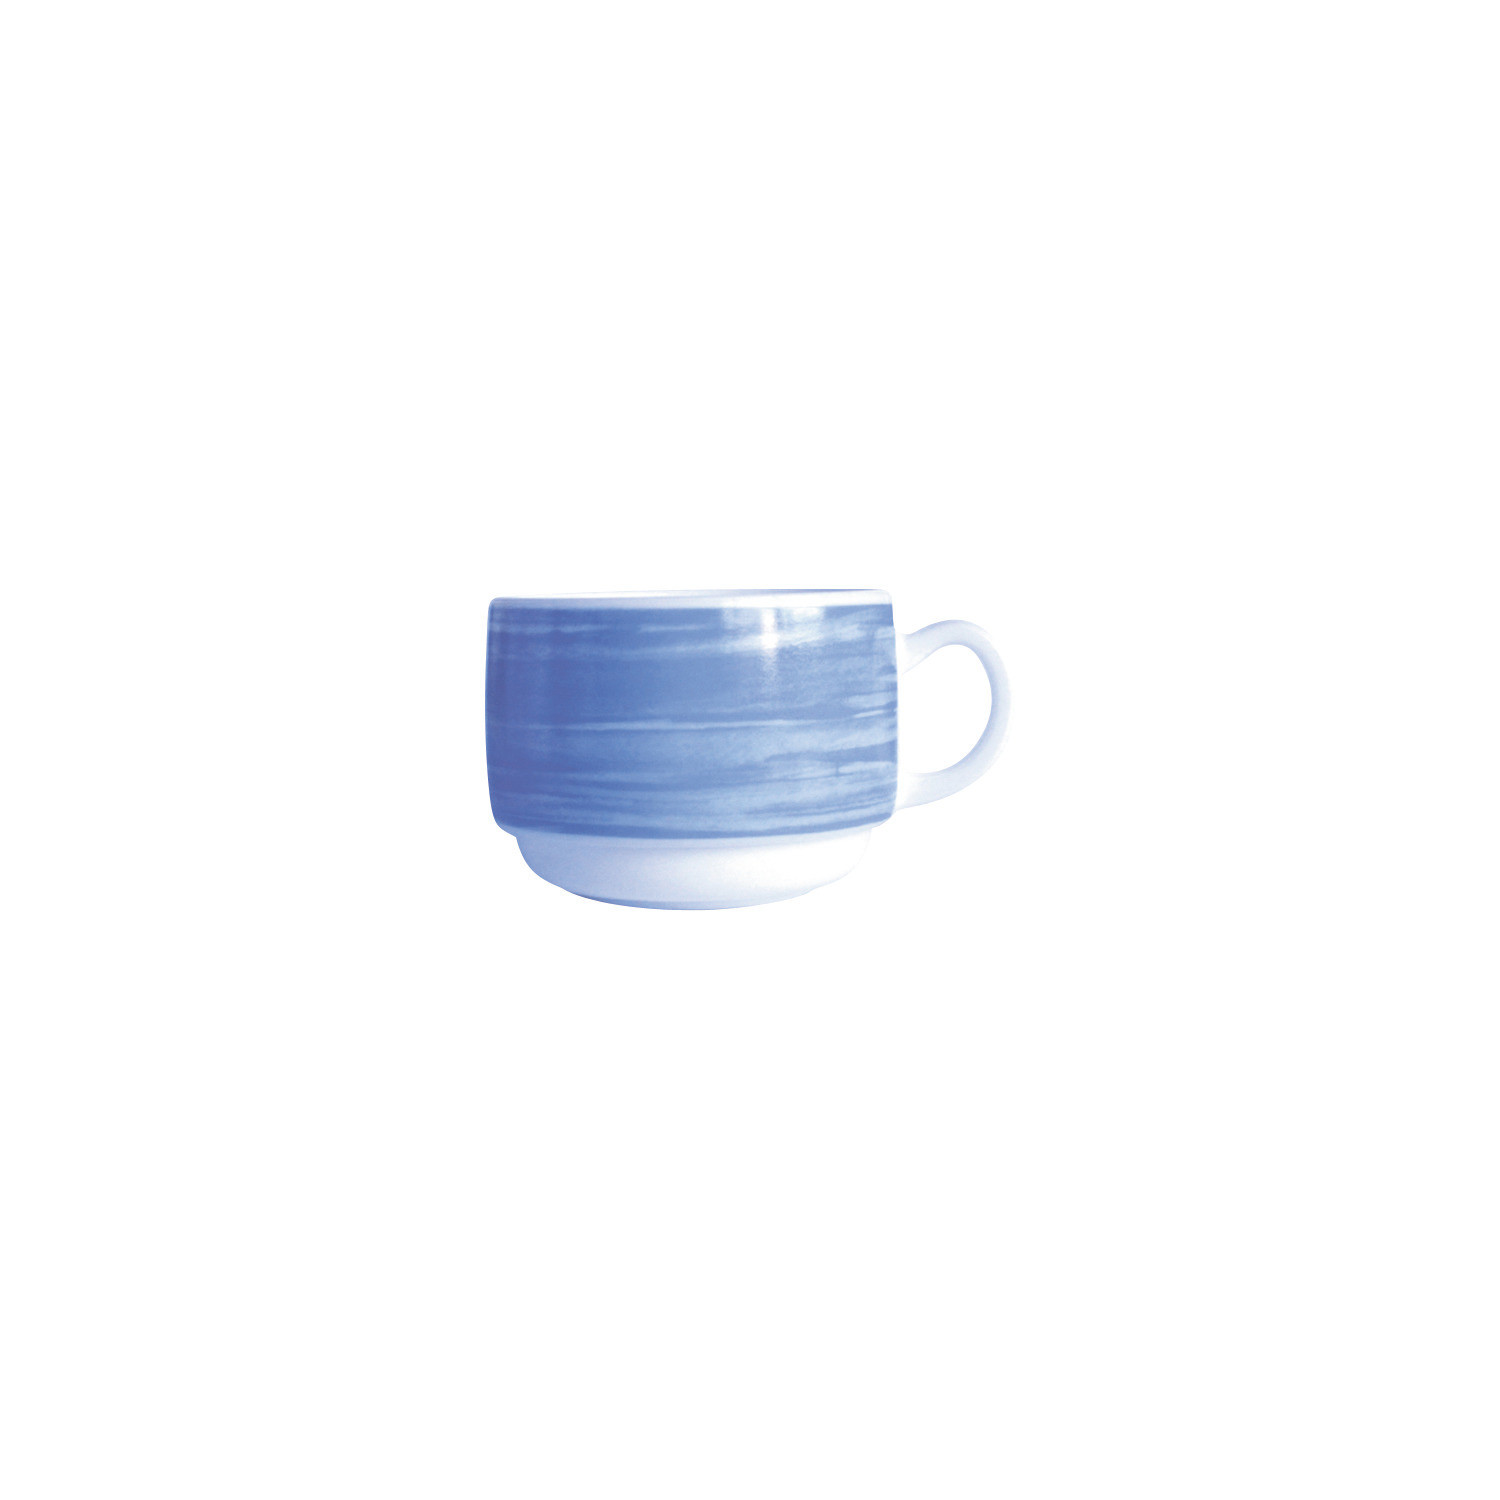 Brush Blue, Gastronomie Tasse stapelbar ø 78 mm / 0,19 l blau